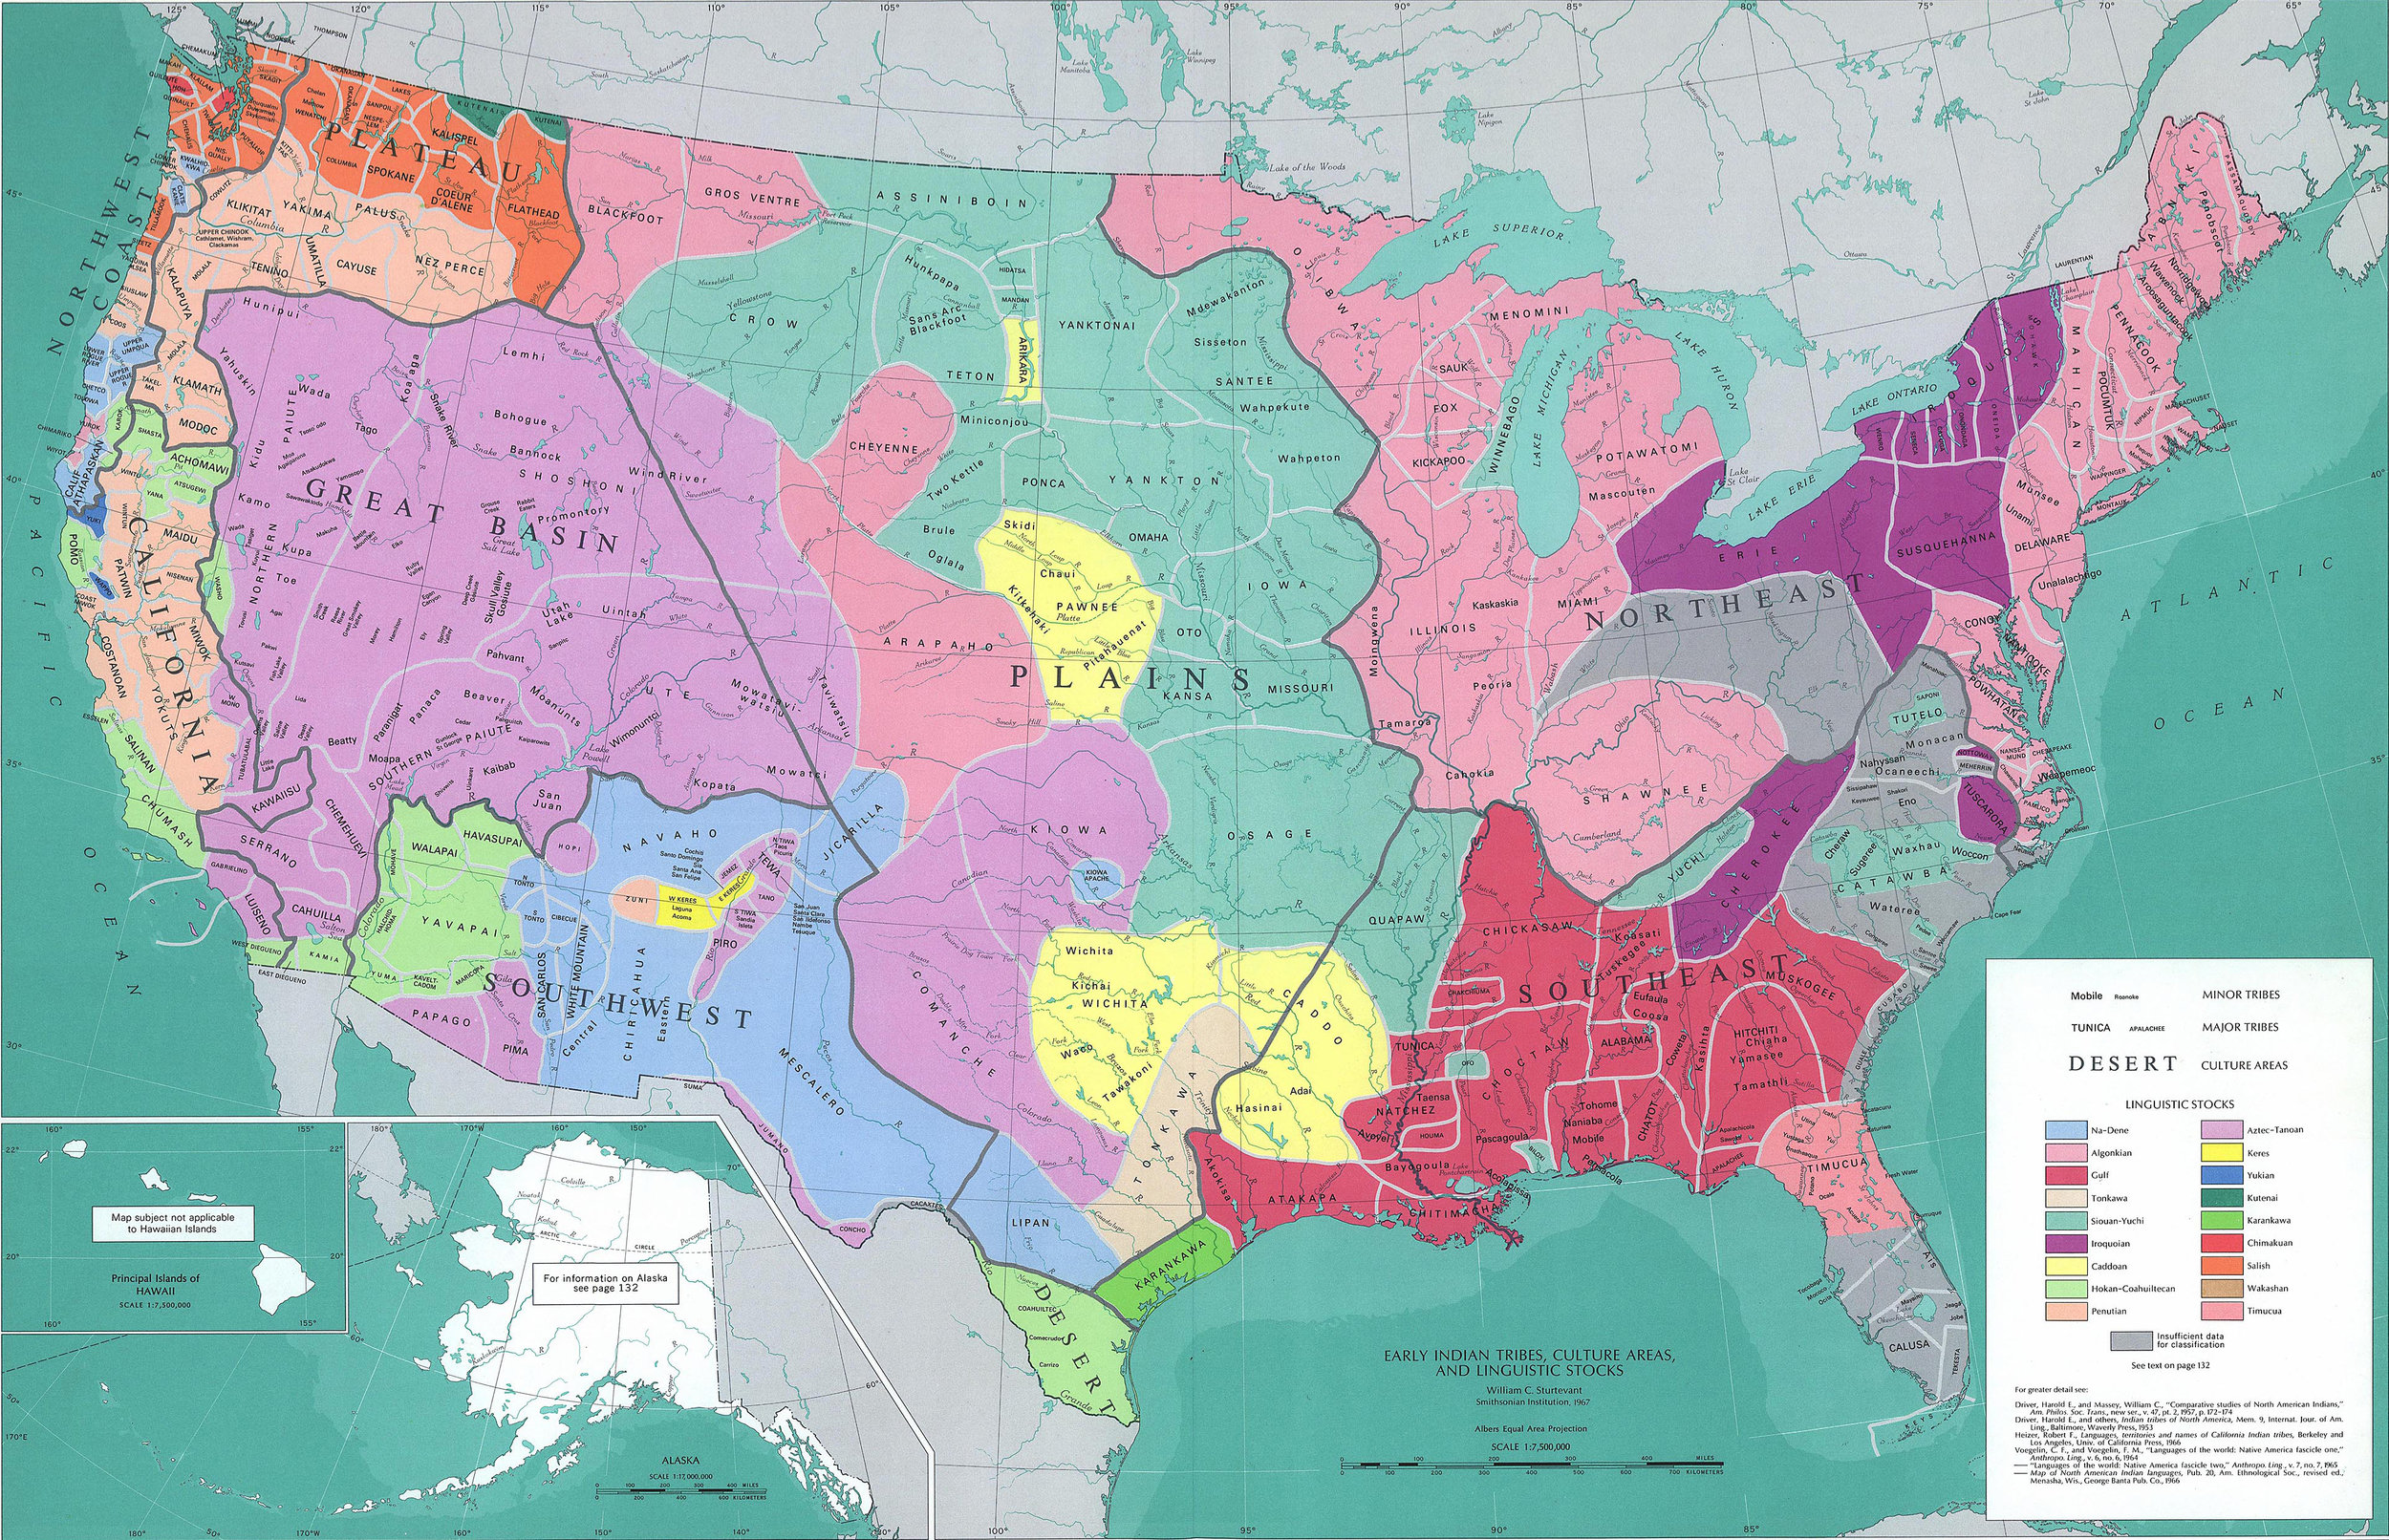 A handy map illustrating the different Native American tribes around America and their traditional lands. I can't seem to find a consensus about which term is most respectful to use: Native American, or Indigenous American, or American Indian, so I've used them all and kept my fingers crossed. Map from Historyonthenet.com. There's another cool map that shows tribes before colonization,  which you can find here .